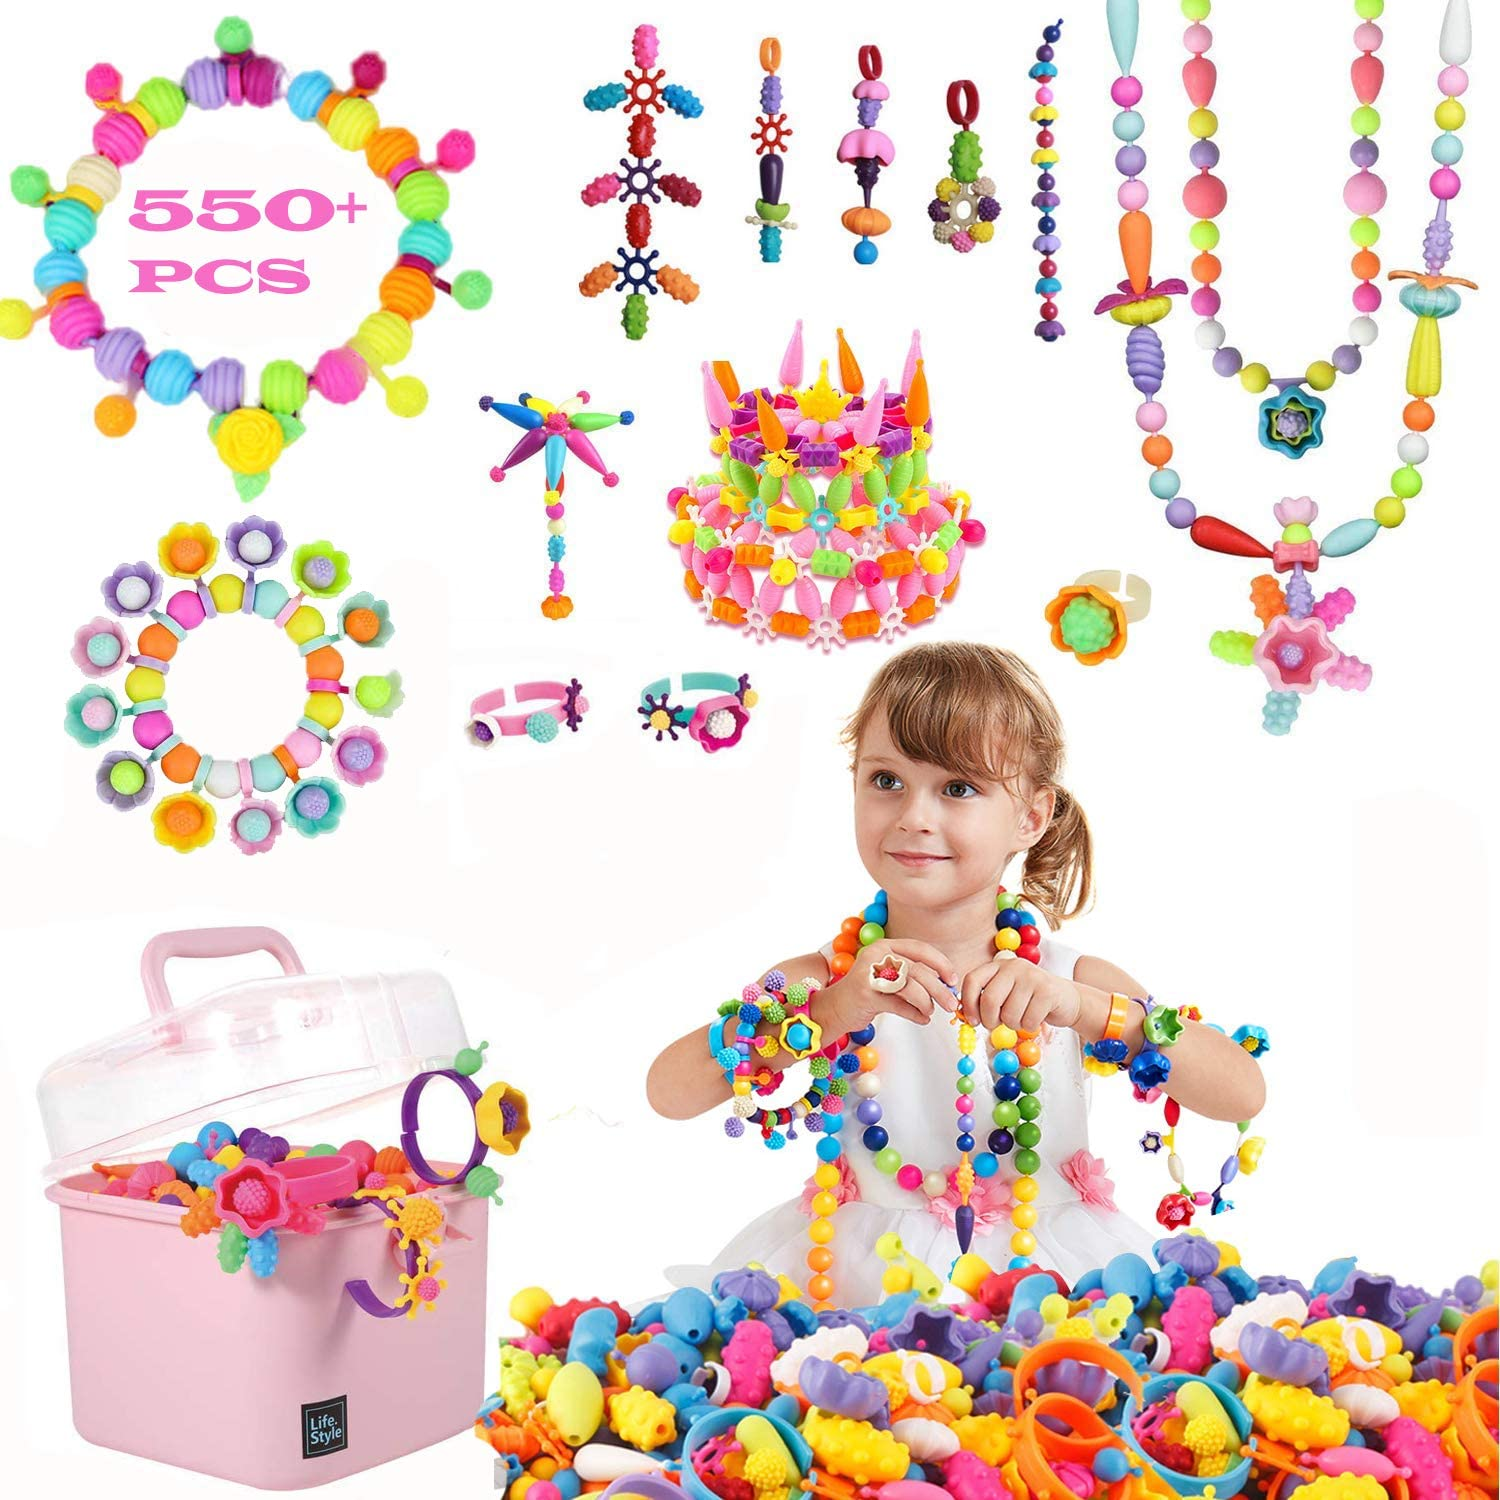 5 7 Year Old Kids Girls 4 550PCS Snap Pop Beads DIY Arts Crafts Set for Hairband Necklace Bracelet 6 Jewelry Making Kit Pop Beads Ring Creativity Toys Ideal Christmas Birthday Gifts for 3